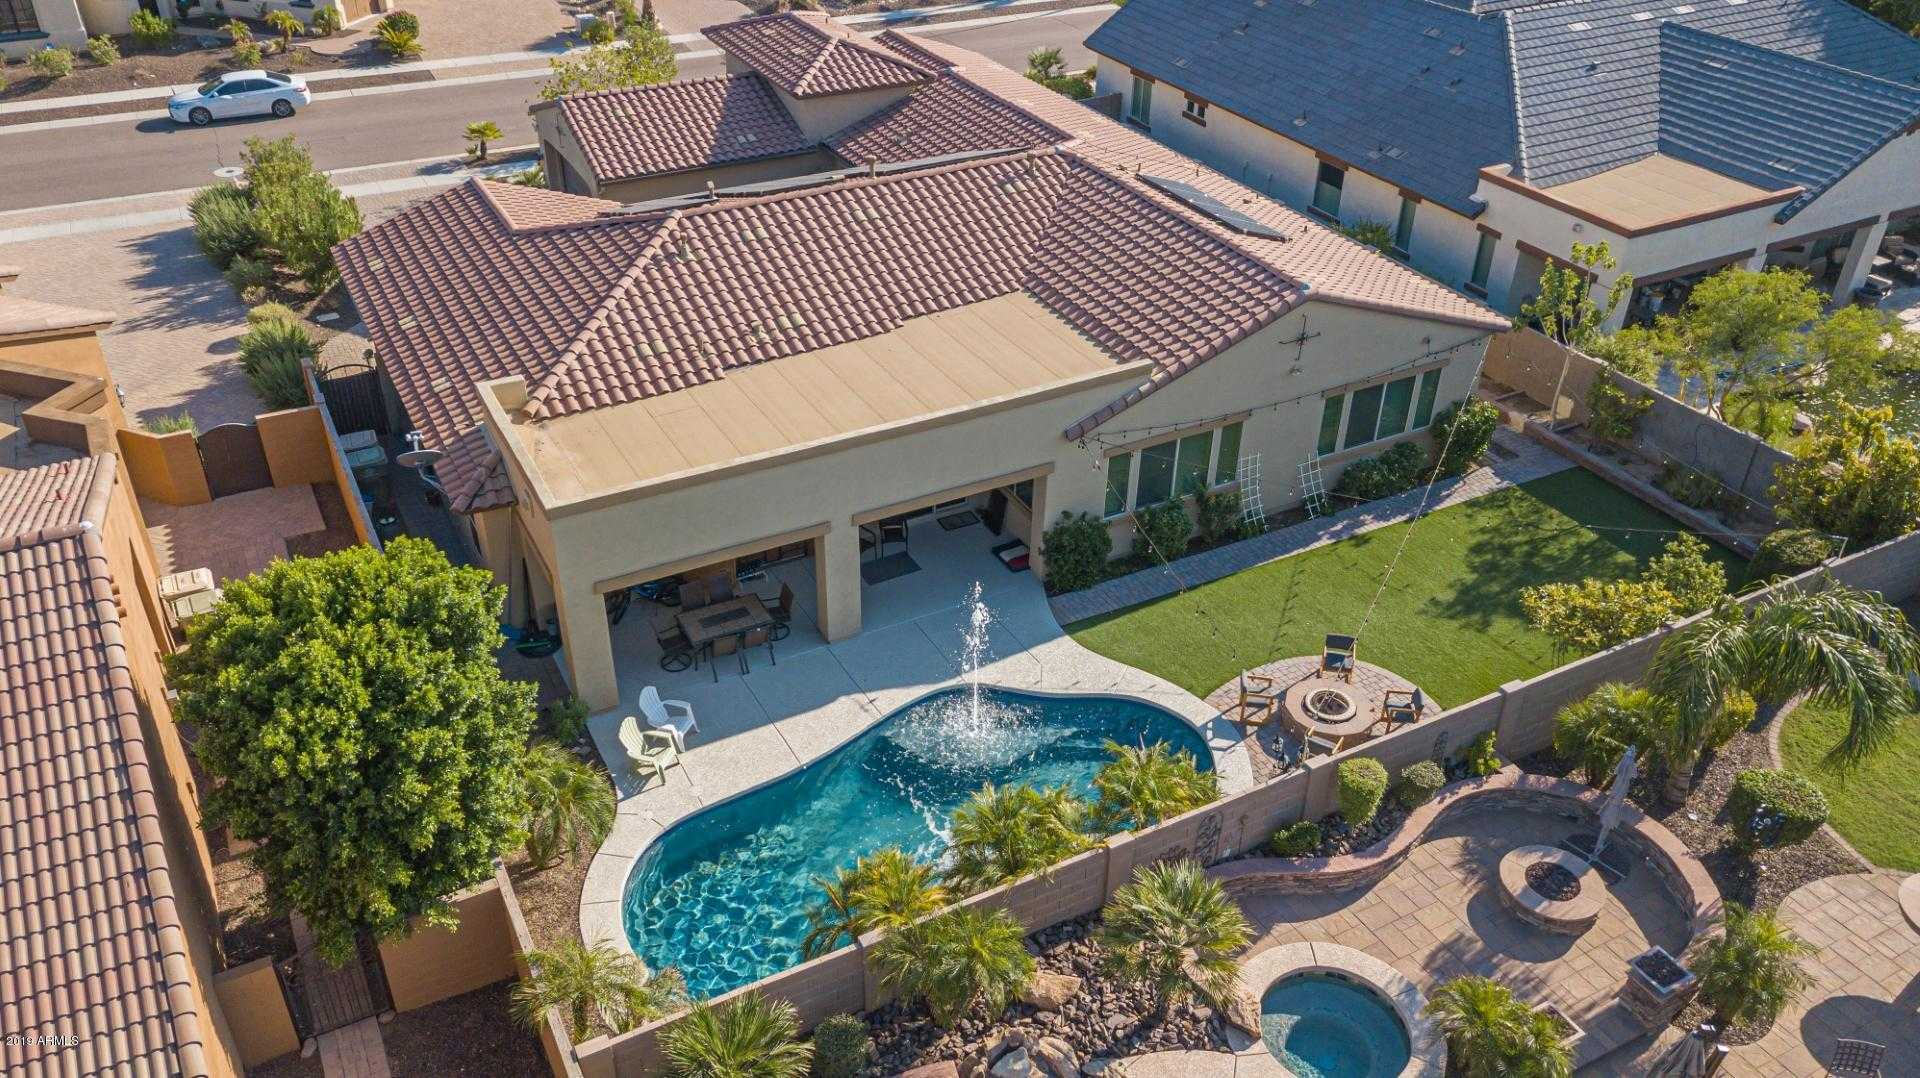 $665,000 - 4Br/4Ba - Home for Sale in Reserve At Eagle Heights, Glendale